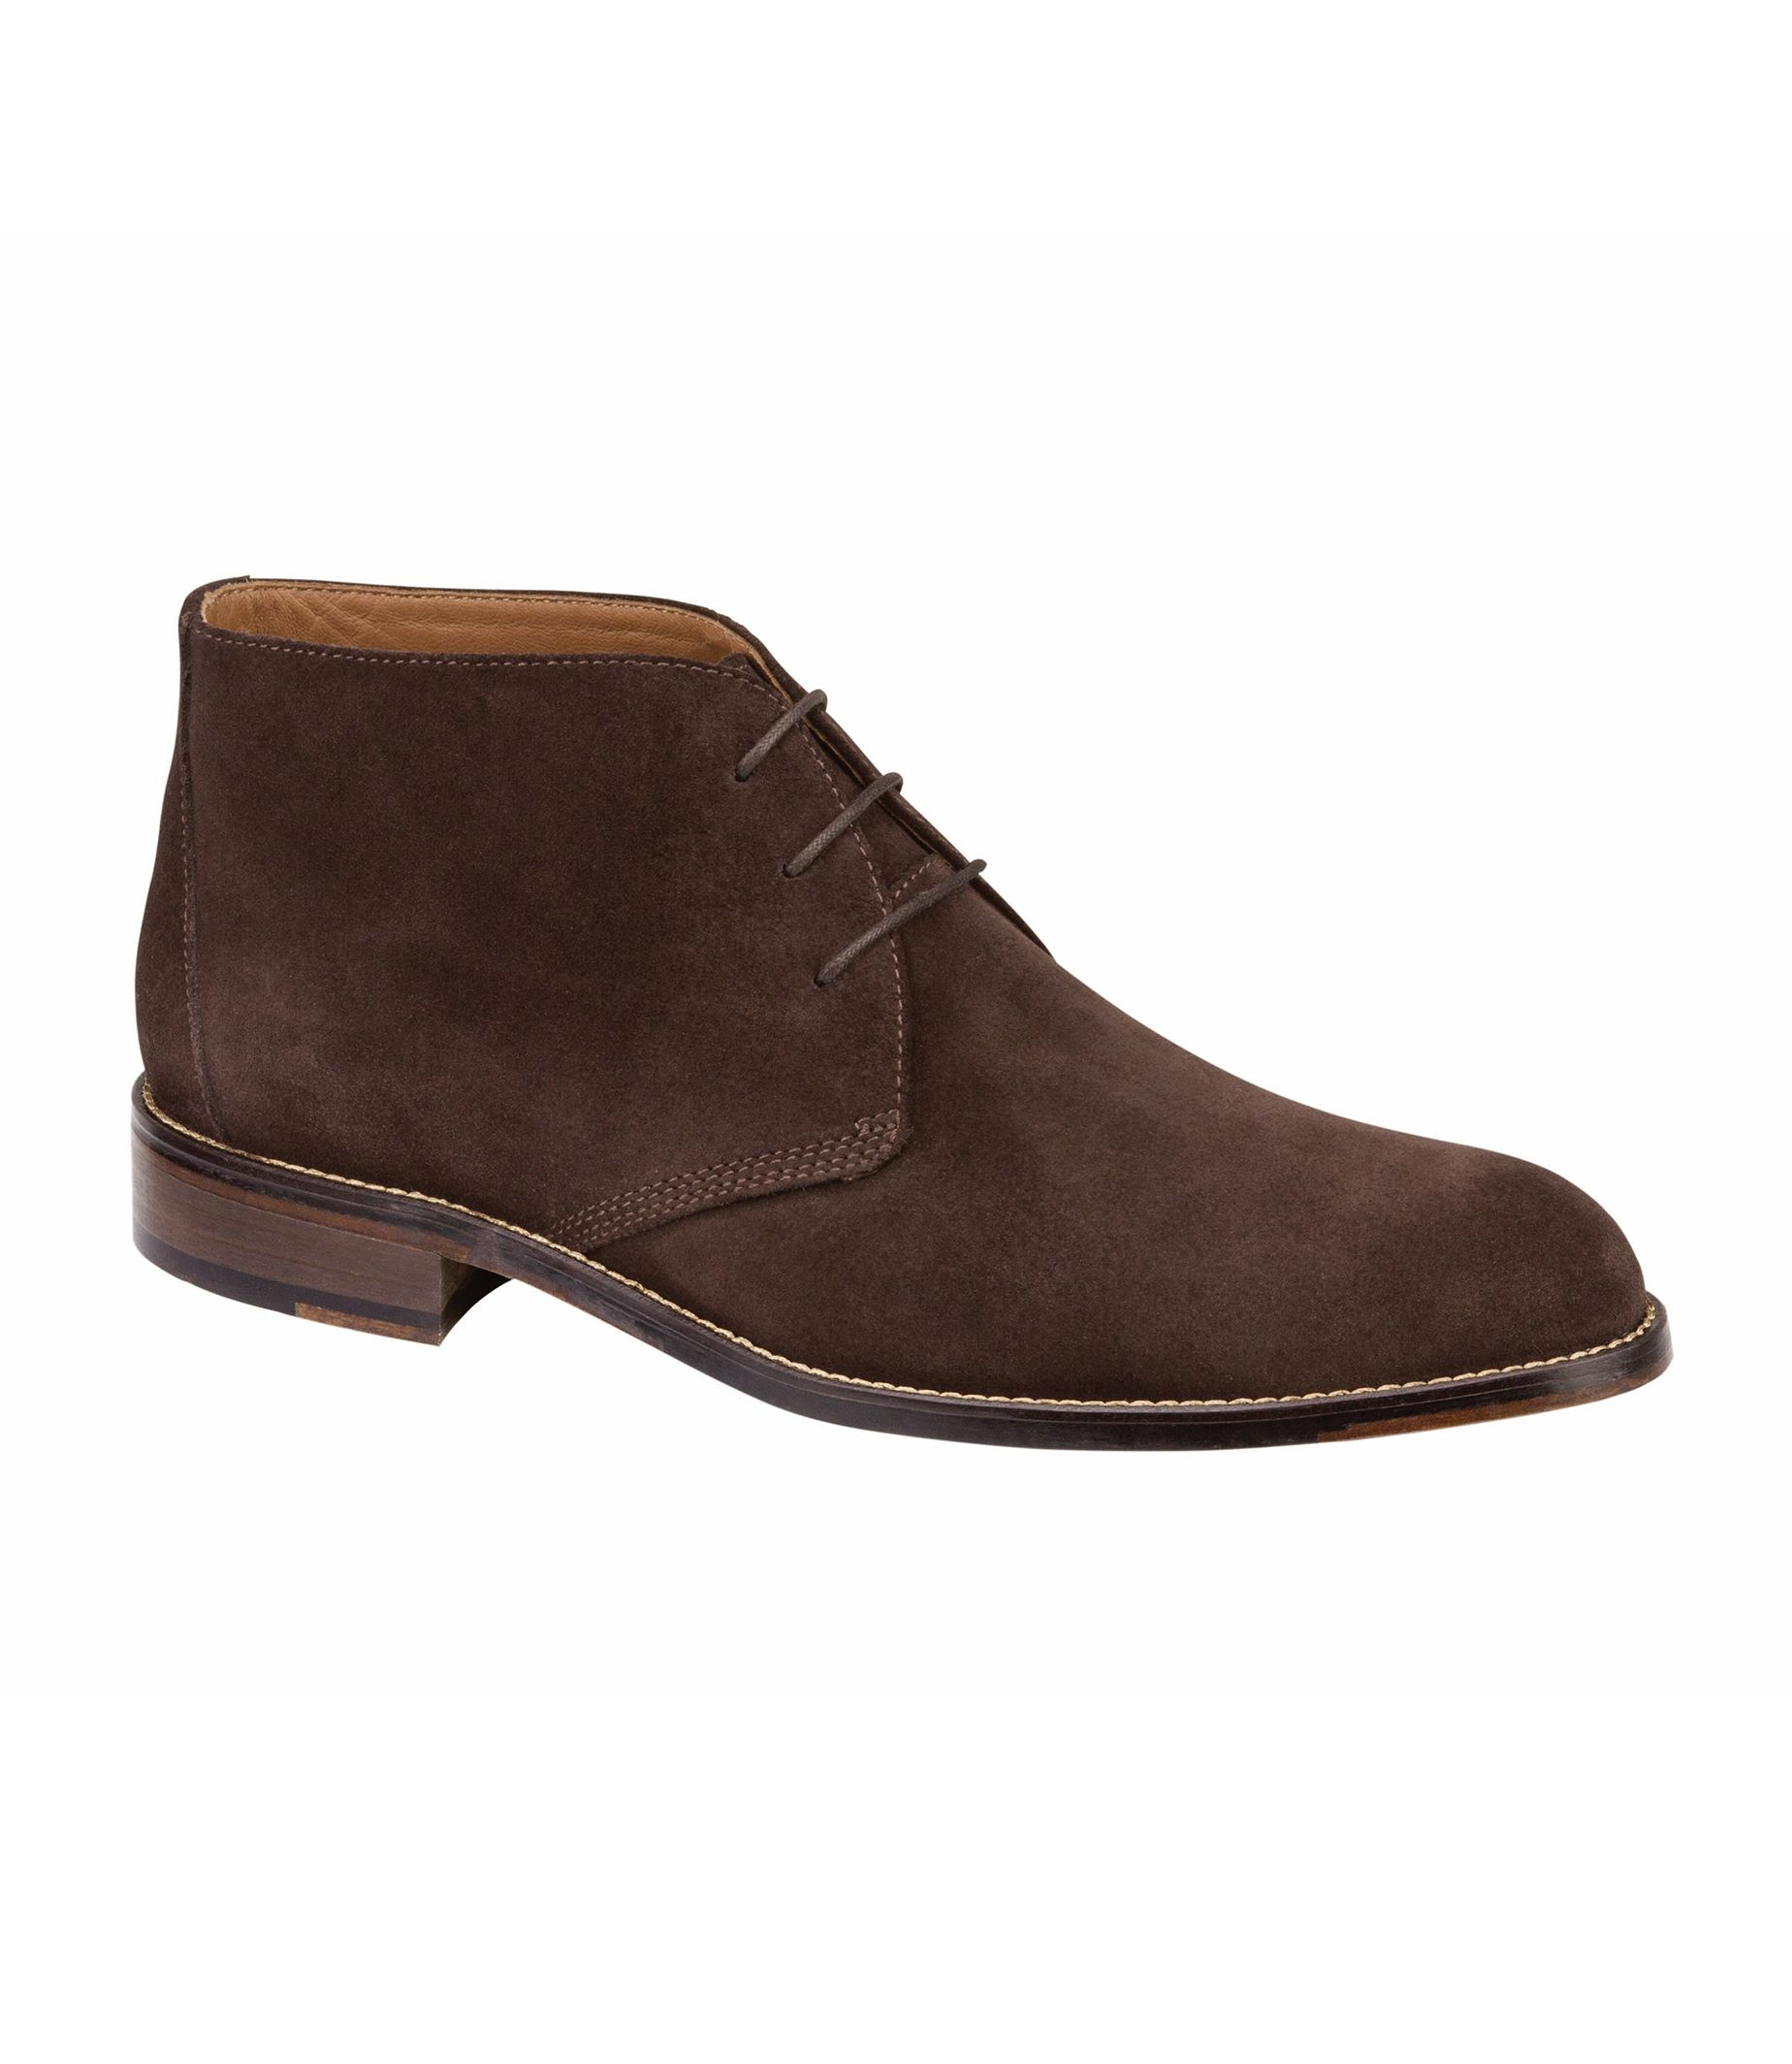 Hartley Chukka Shoe by Johnston and Murphy